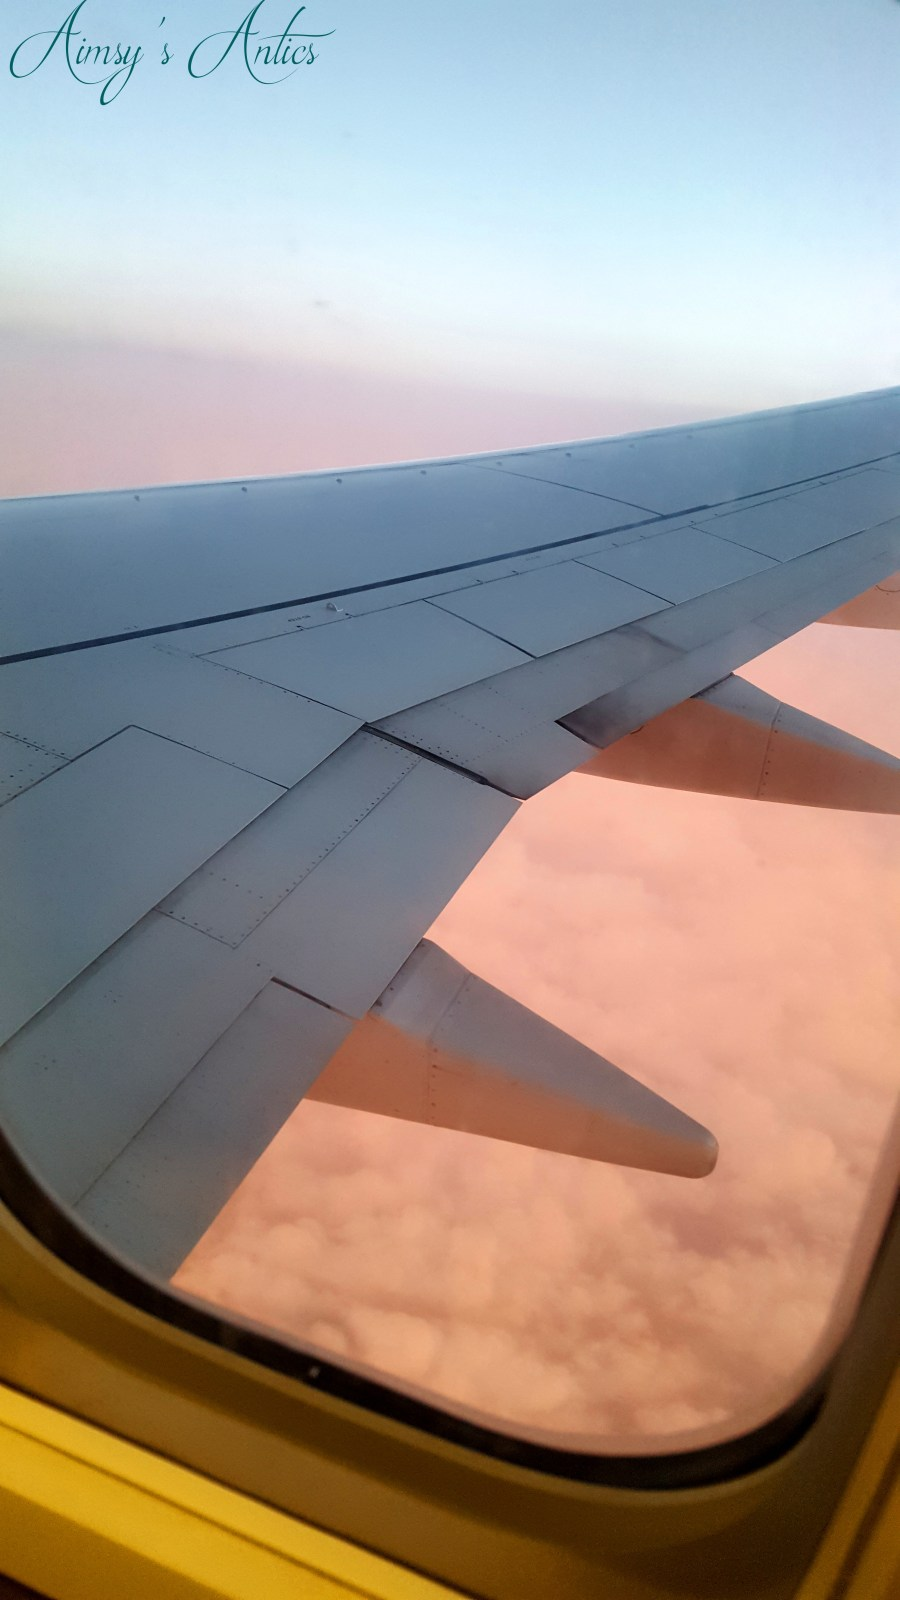 View of a aeroplane wing from the window. Clouds with orange glow below